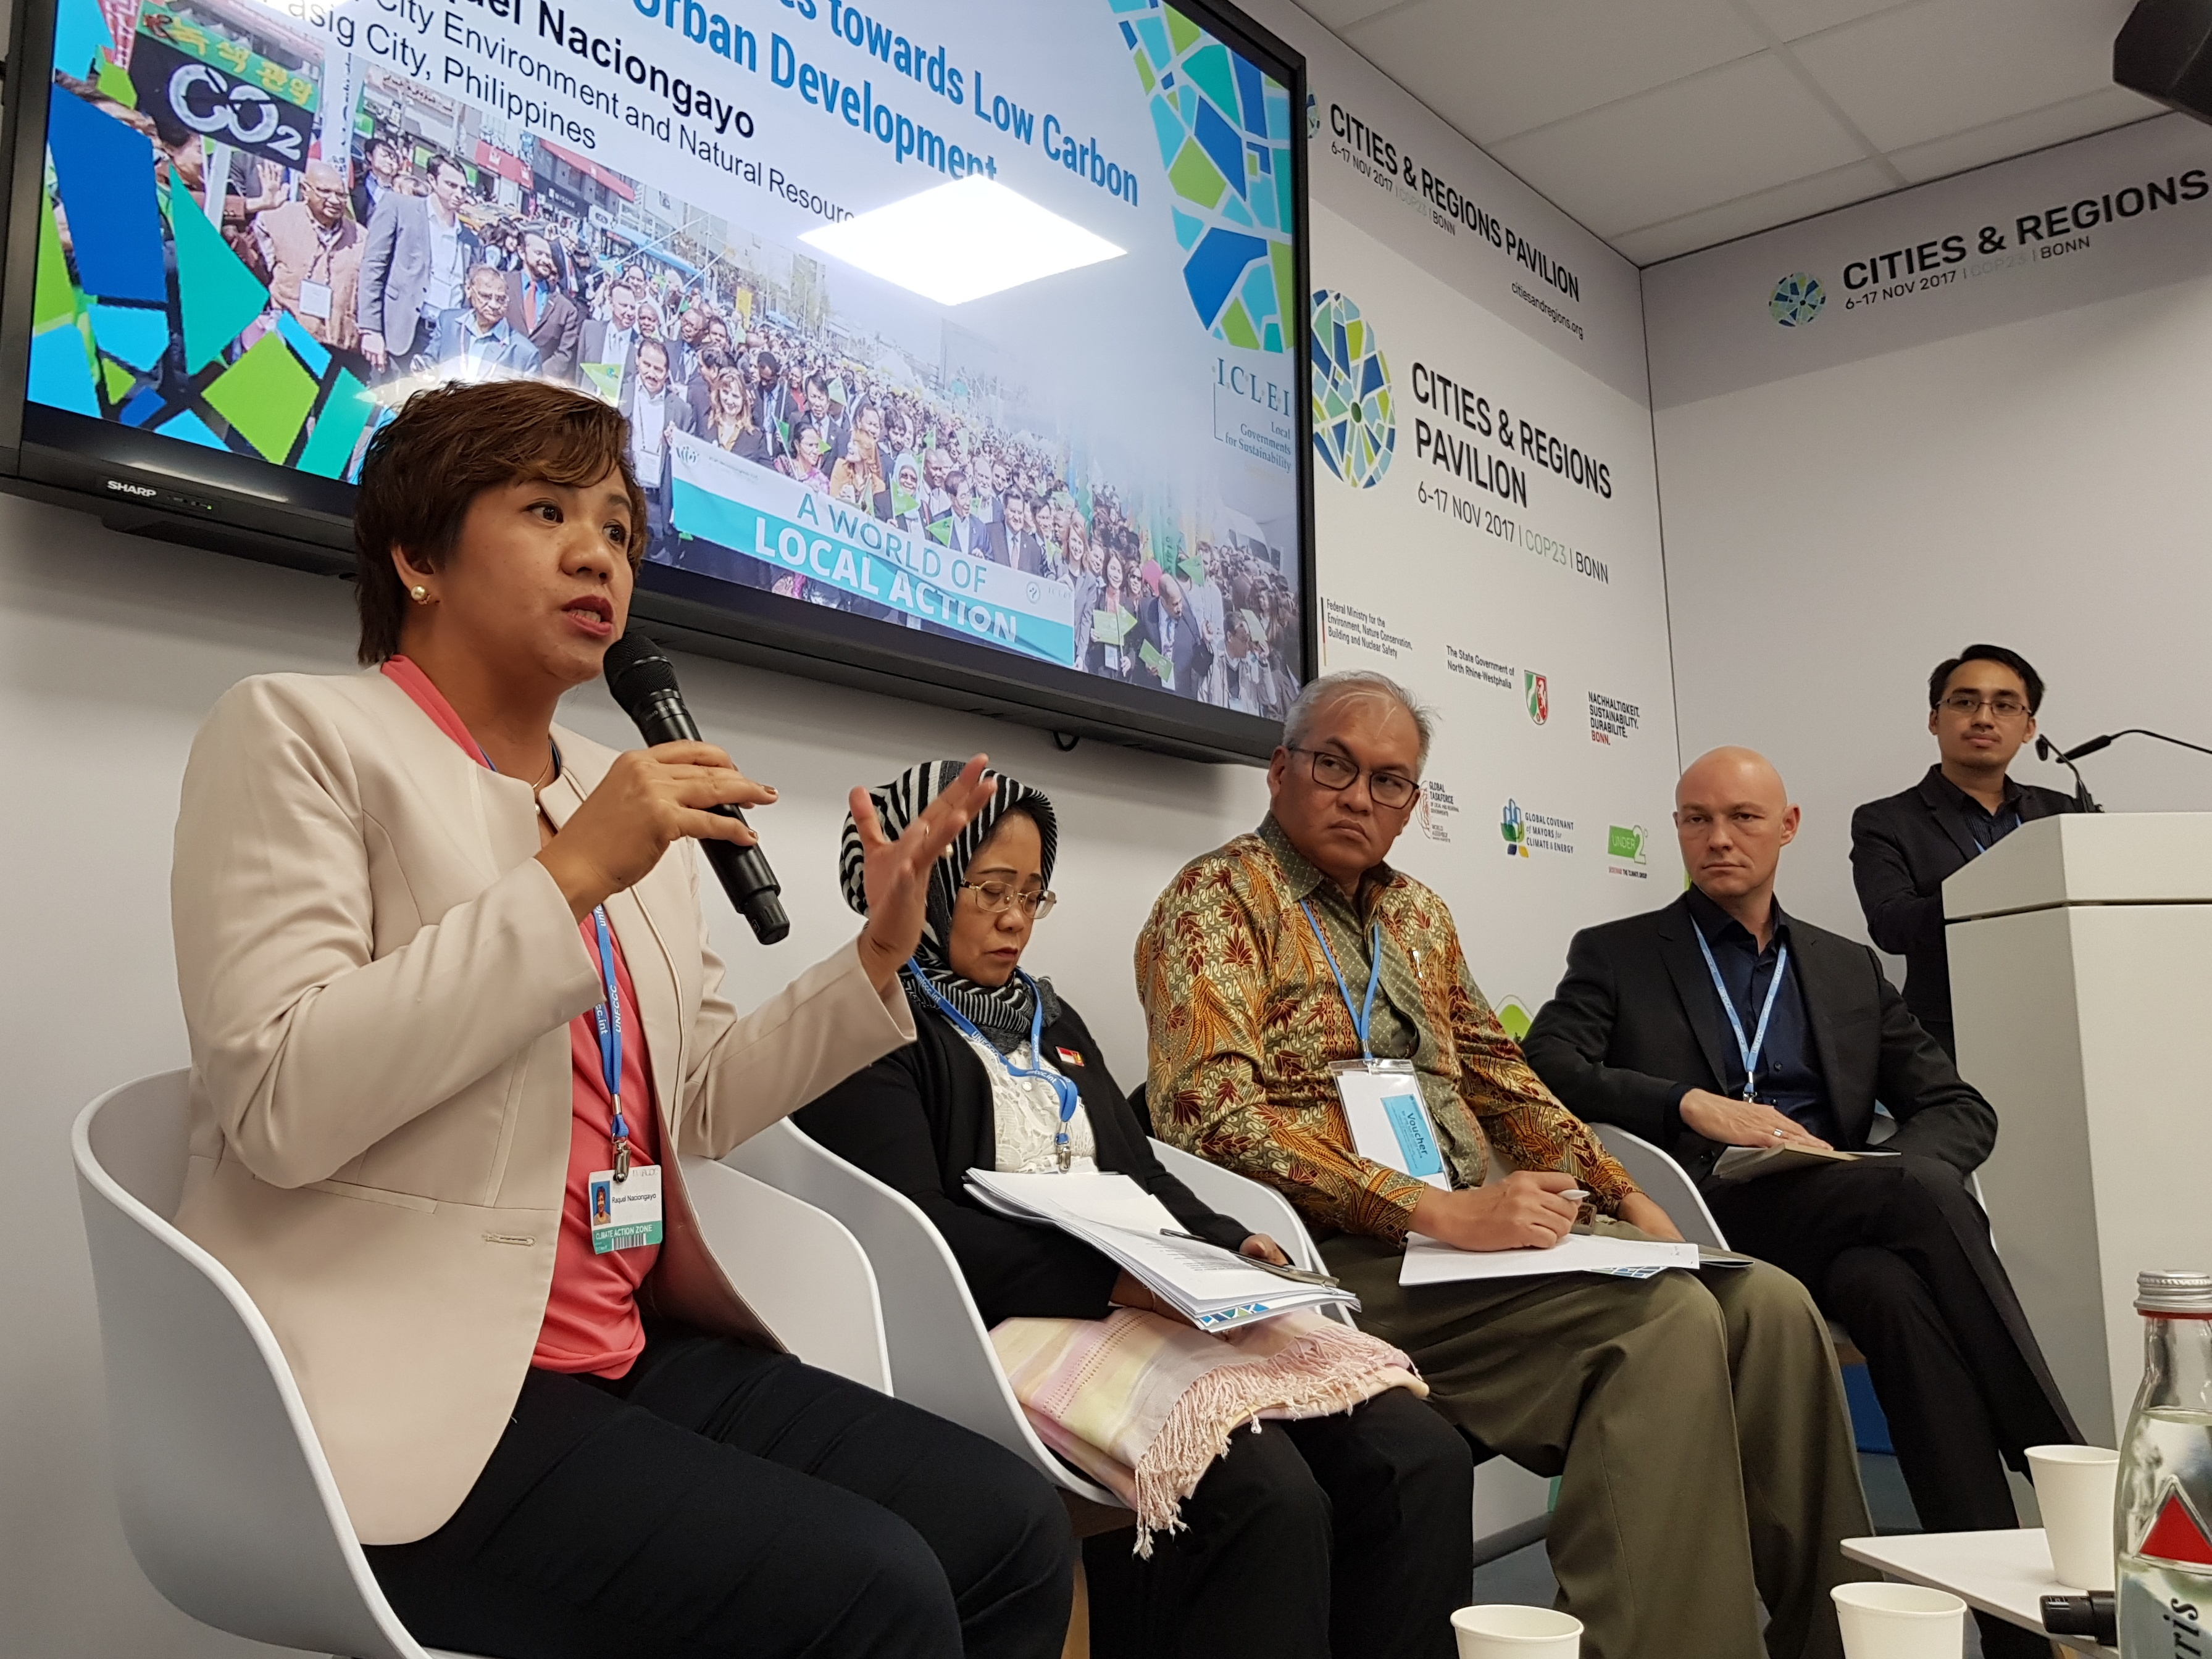 CLIMATE CHANGE. ASEAN cities present sustainable climate change mitigation initiatives during the annual United Nations Climate Change Conference (COP23) in Germany. Photo by Mickey Eva